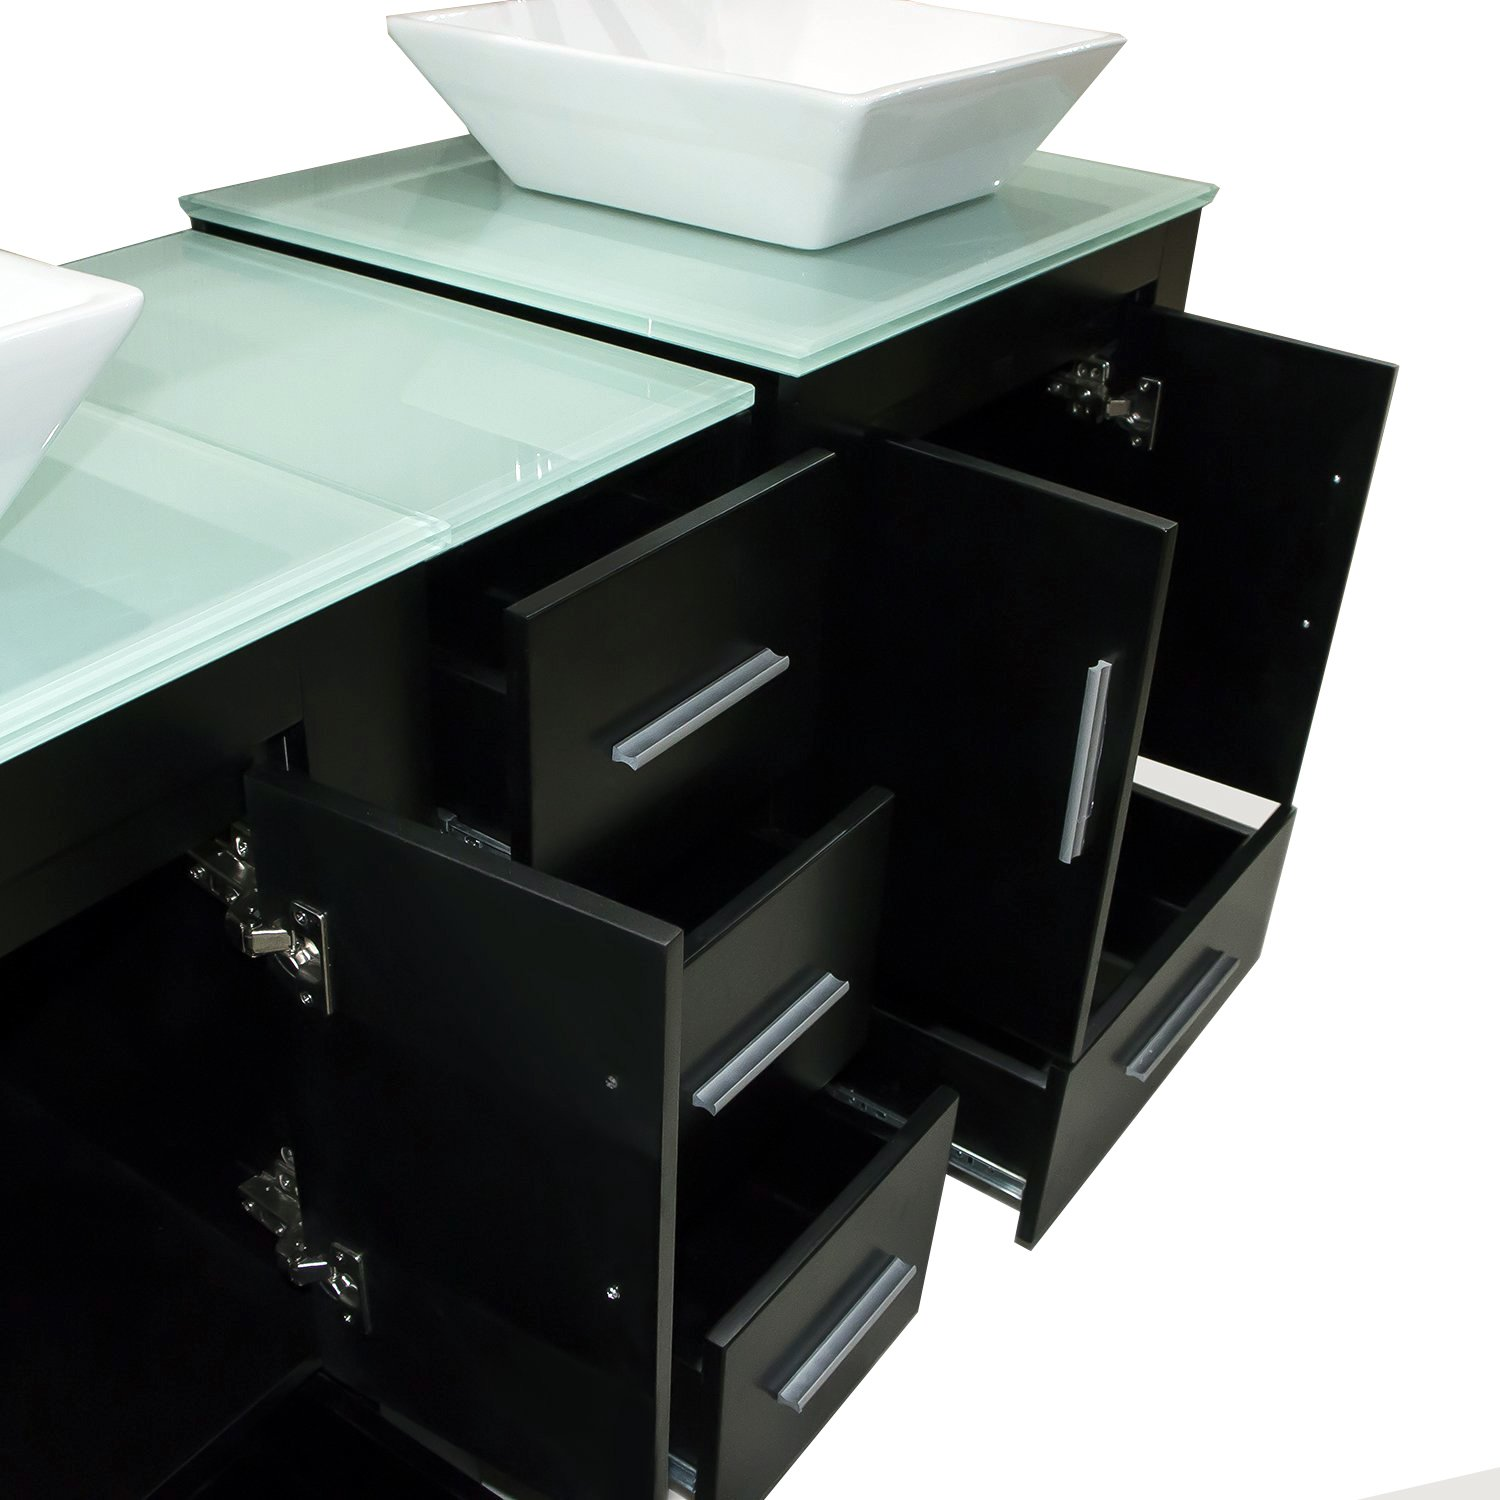 Walcut Luxury 60'' Modern Double Ceramic Sink Solid Wood Bathroom Vanity Cabinet With Mirror And Tempered Glass Table Board by WALCUT (Image #3)